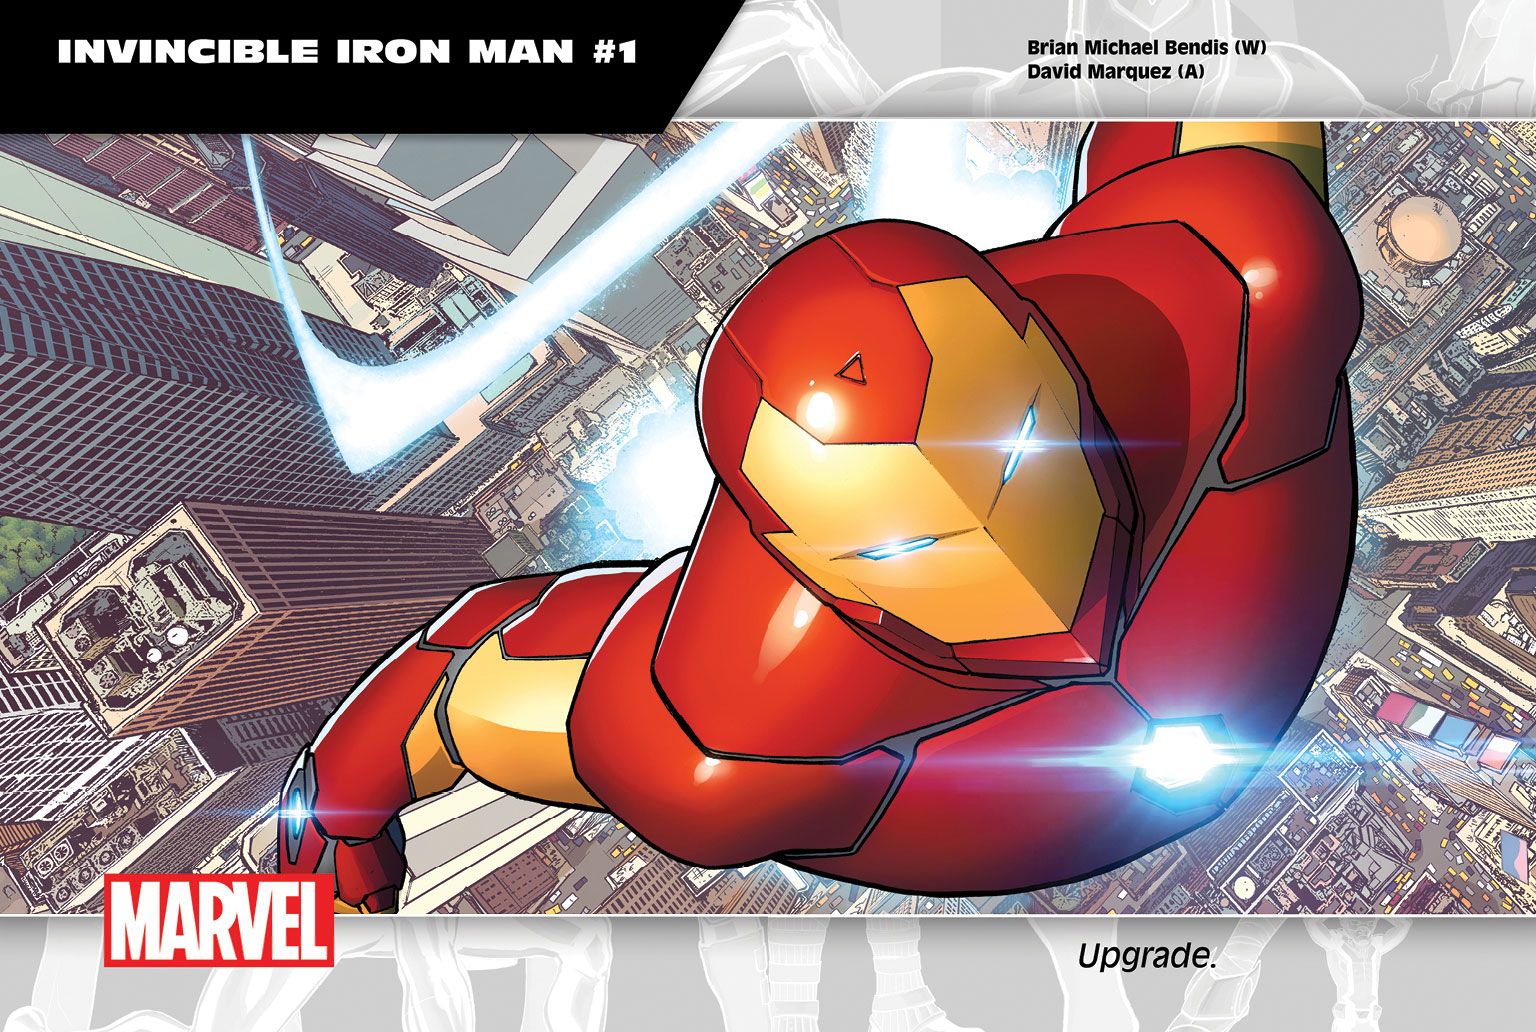 Invincible-Iron-Man-1-Promo-189ac